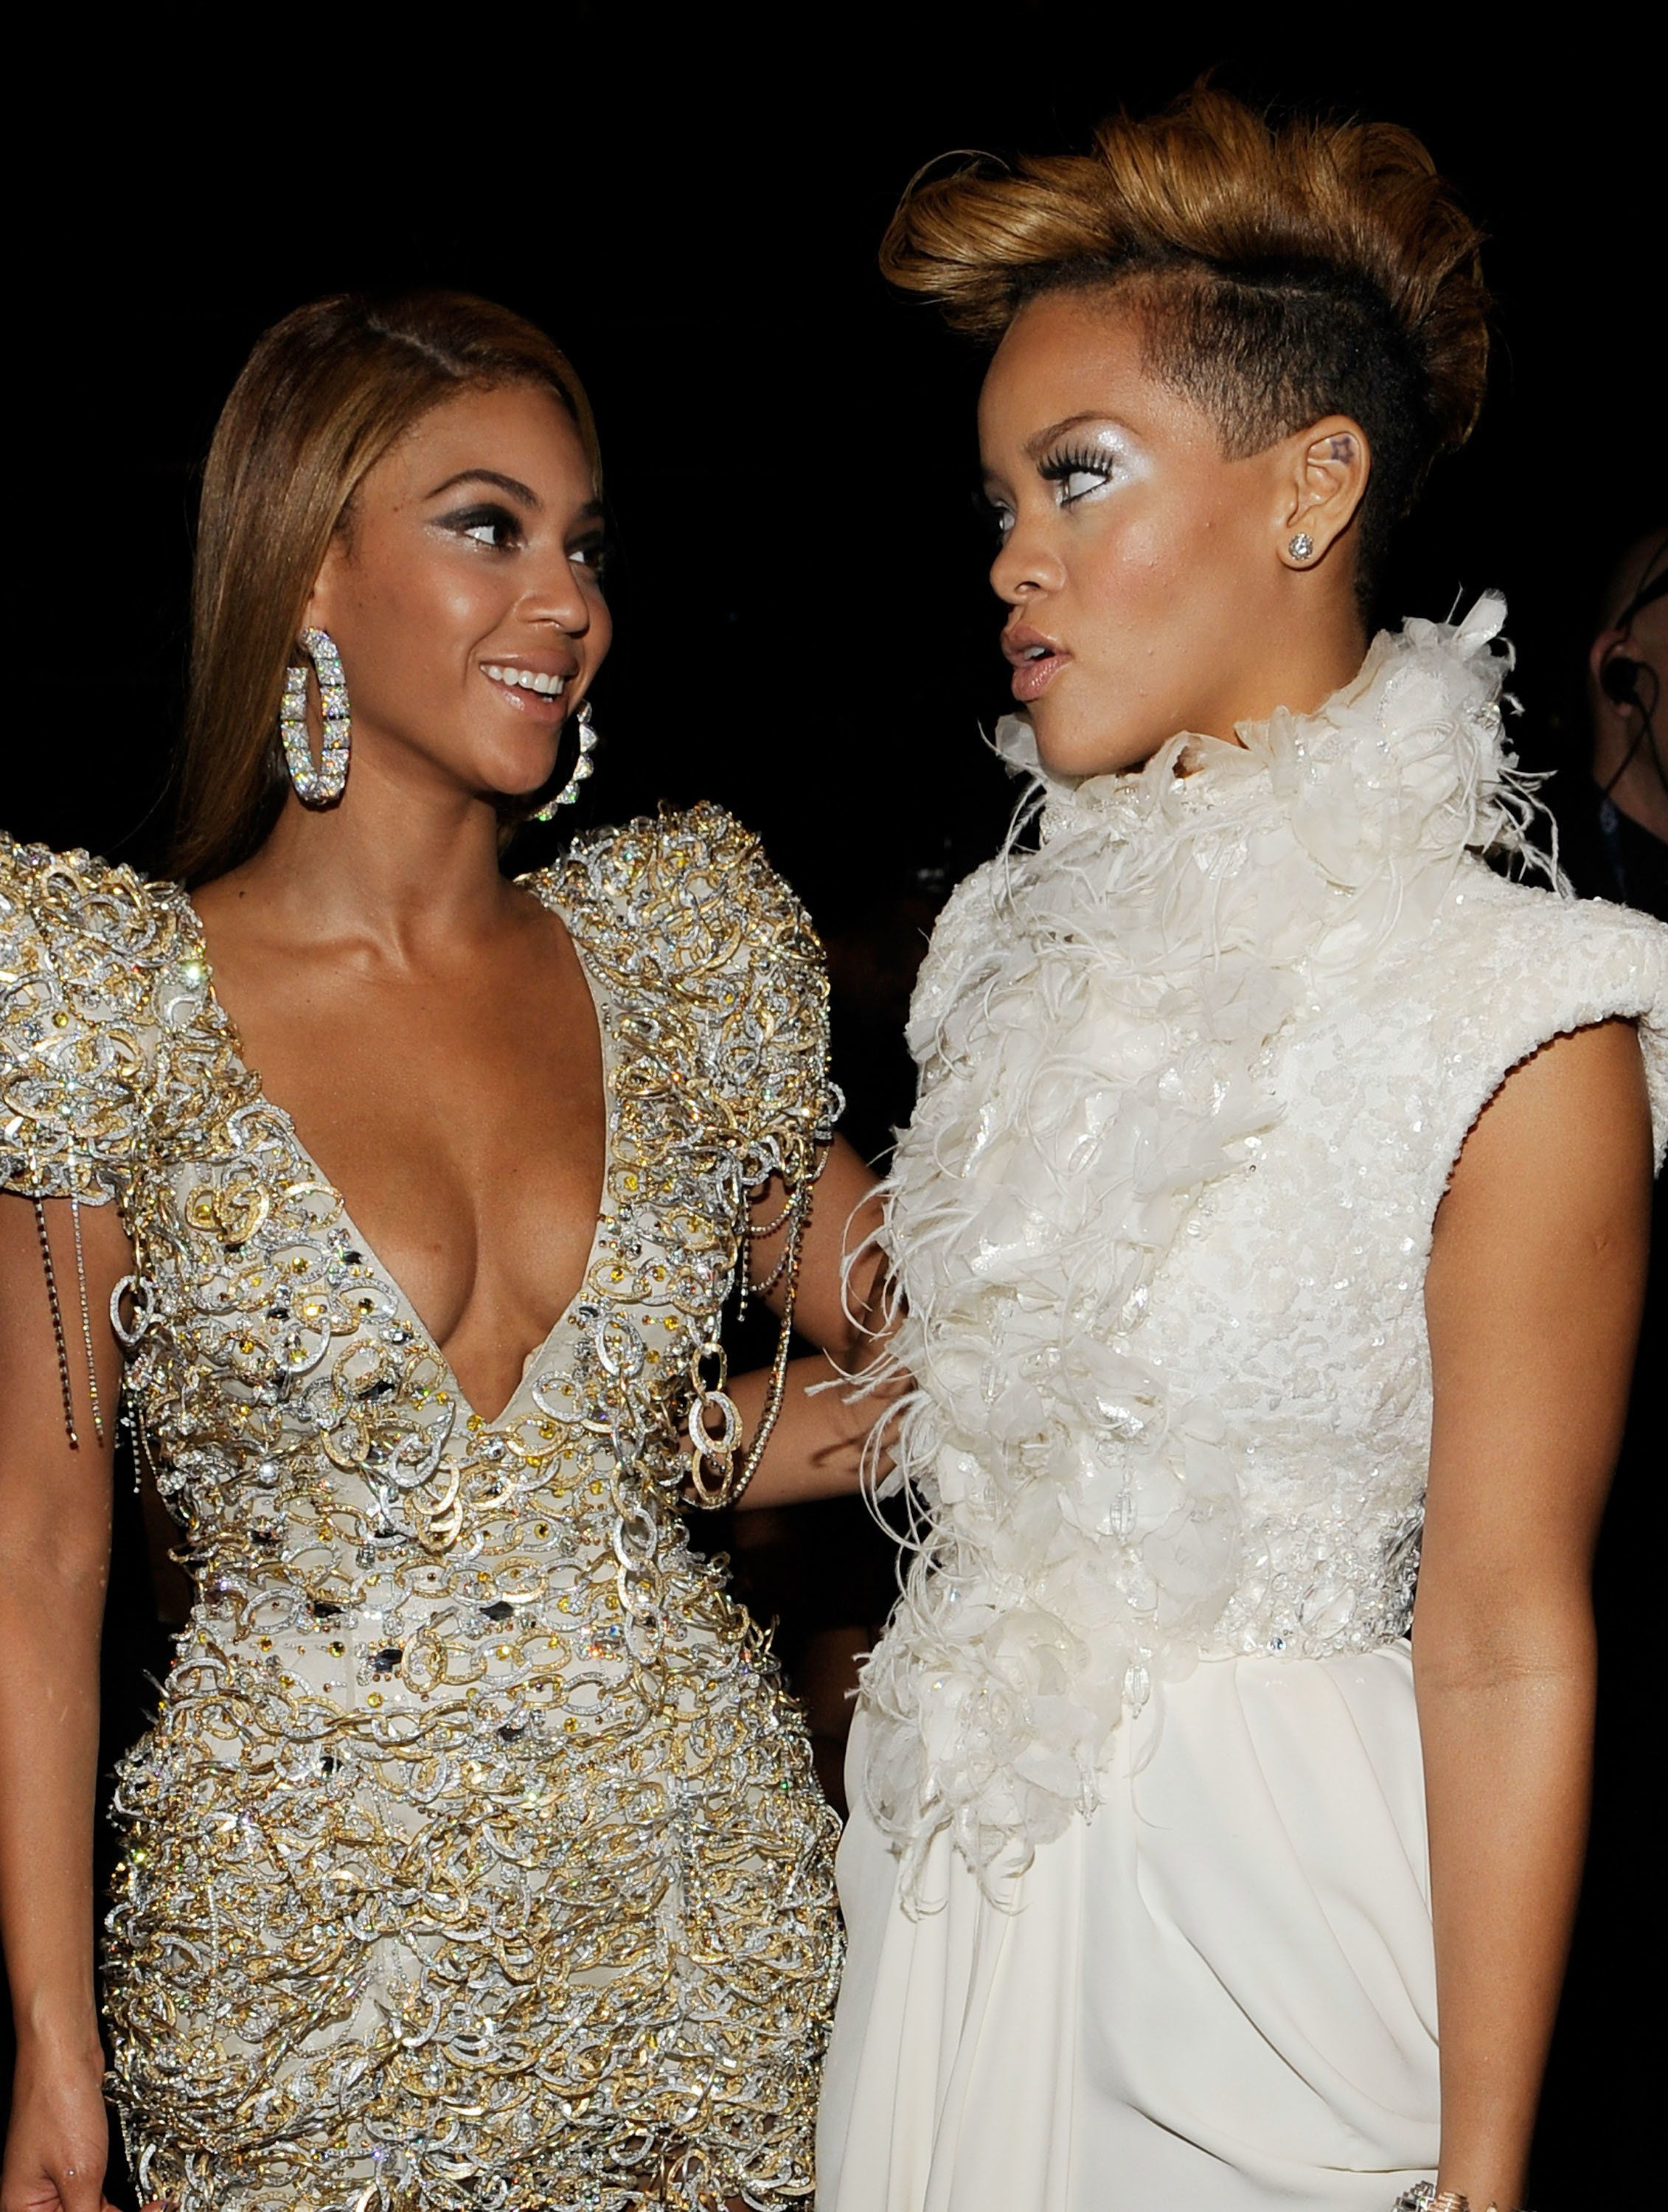 LOS ANGELES, CA - JANUARY 31: Singers Beyonce Knowles (L) and Rihanna (R) backstage during the 52nd Annual GRAMMY Awards held at Staples Center on January 31, 2010 in Los Angeles, California. (Photo by Larry Busacca/Getty Images)